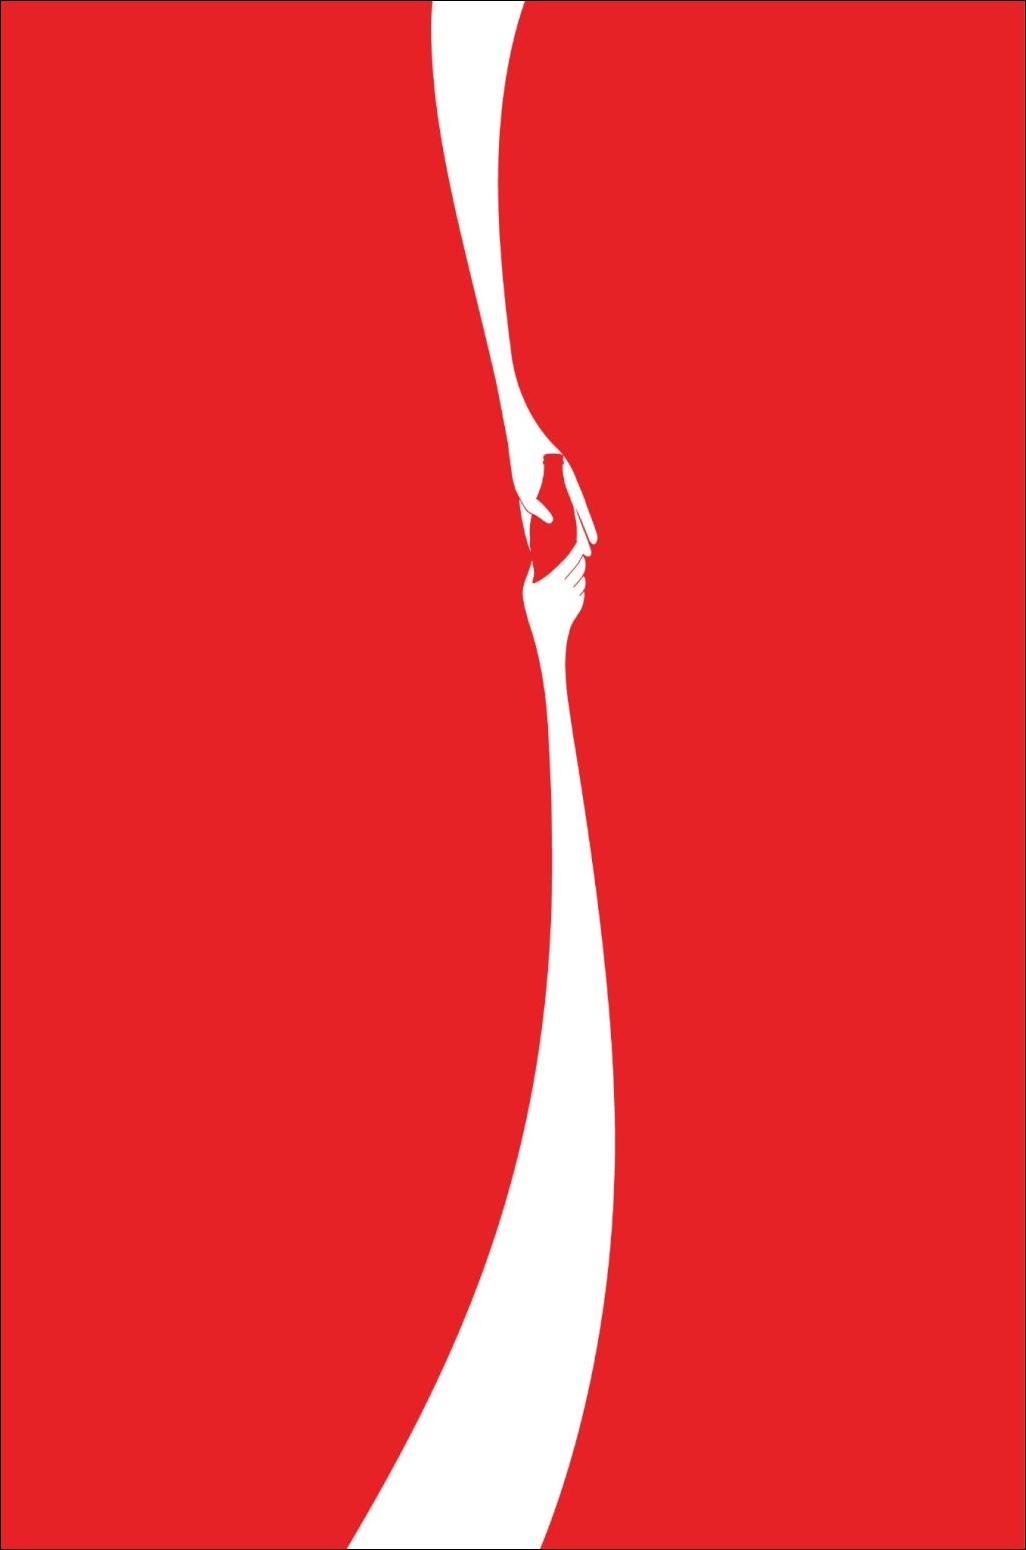 """explain how coca cola and tfd's style 'taste the feeling' is coke's new global marketing campaign  advertising, use  a """"norman rockwell meets instagram"""" visual style to capture authentic,  unscripted moments in a contemporary way, echeverria explained."""